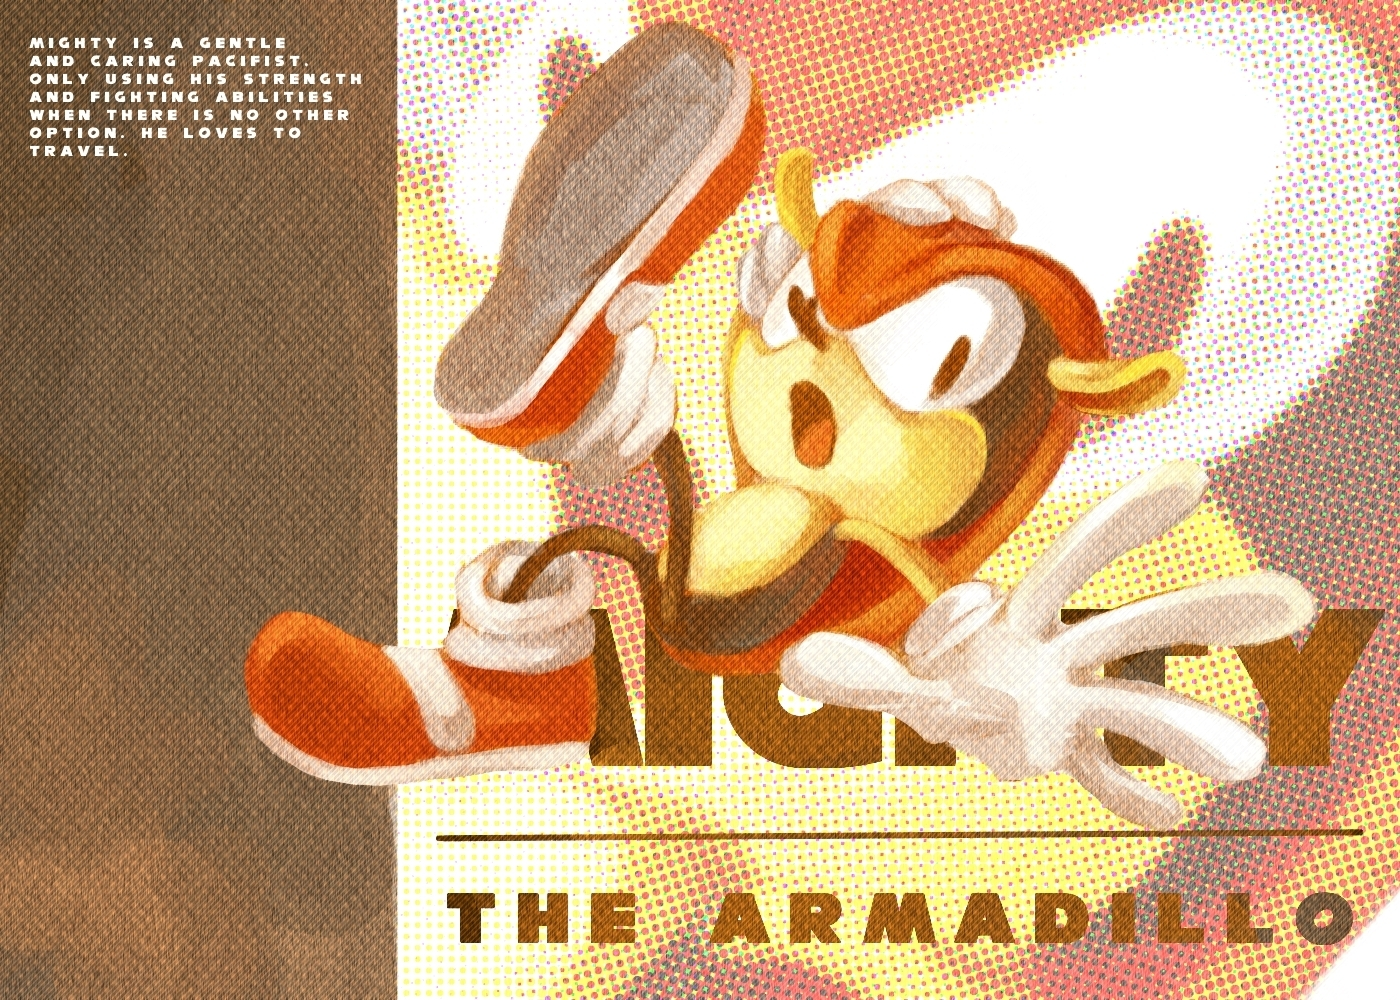 Mighty the armadillo wallpaper